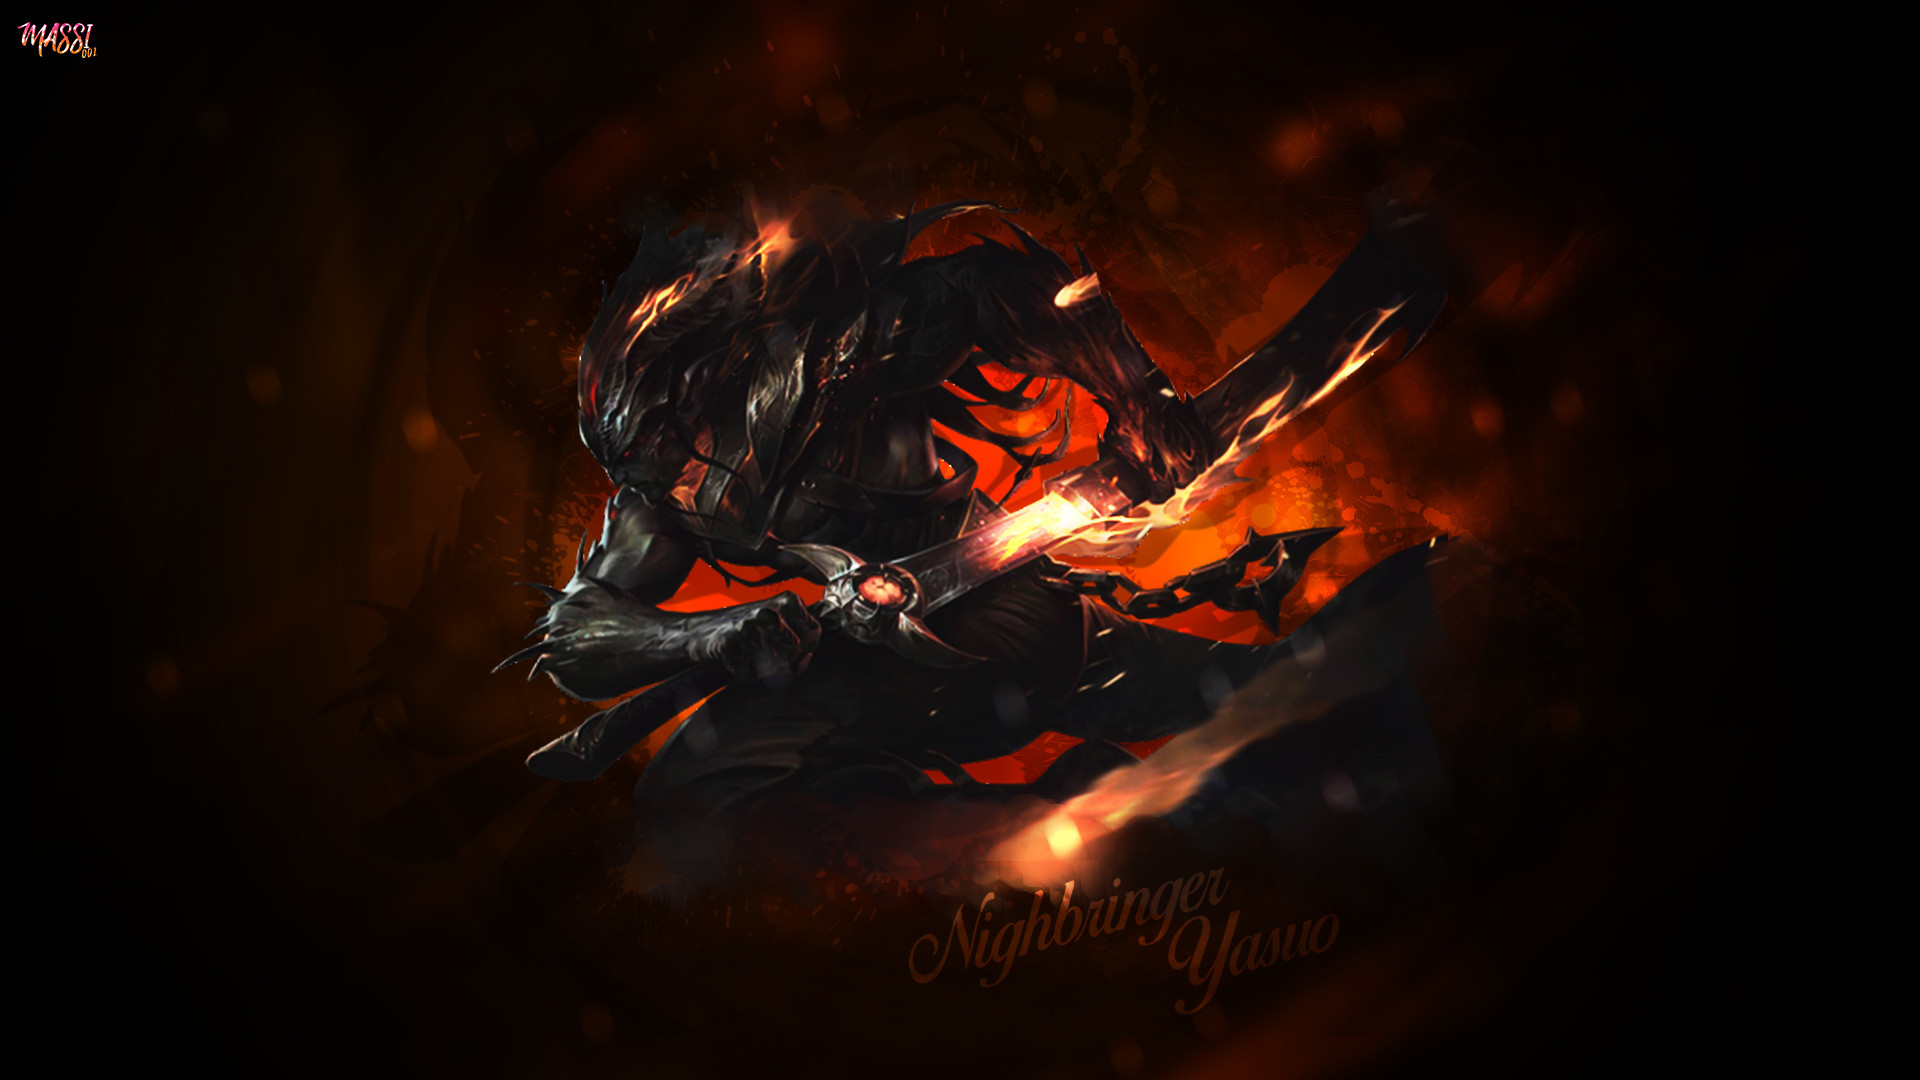 1920x1080 Nightbringer Yasuo by Massi001 HD Wallpaper Background Official Artwork  League of Legends lol